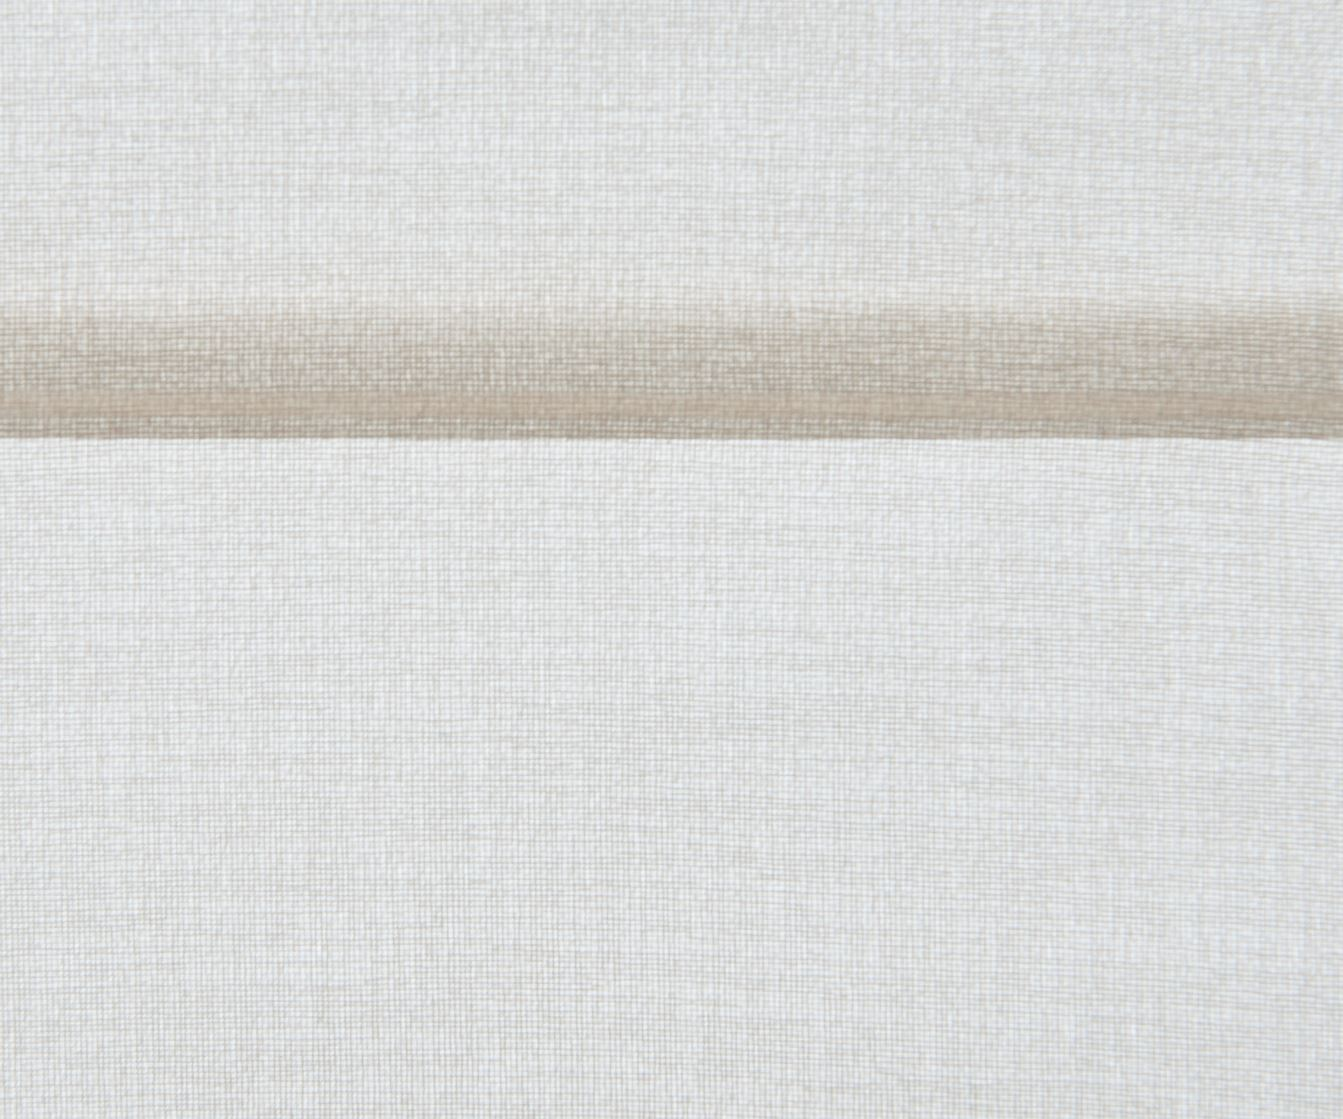 French Linen 2-6398